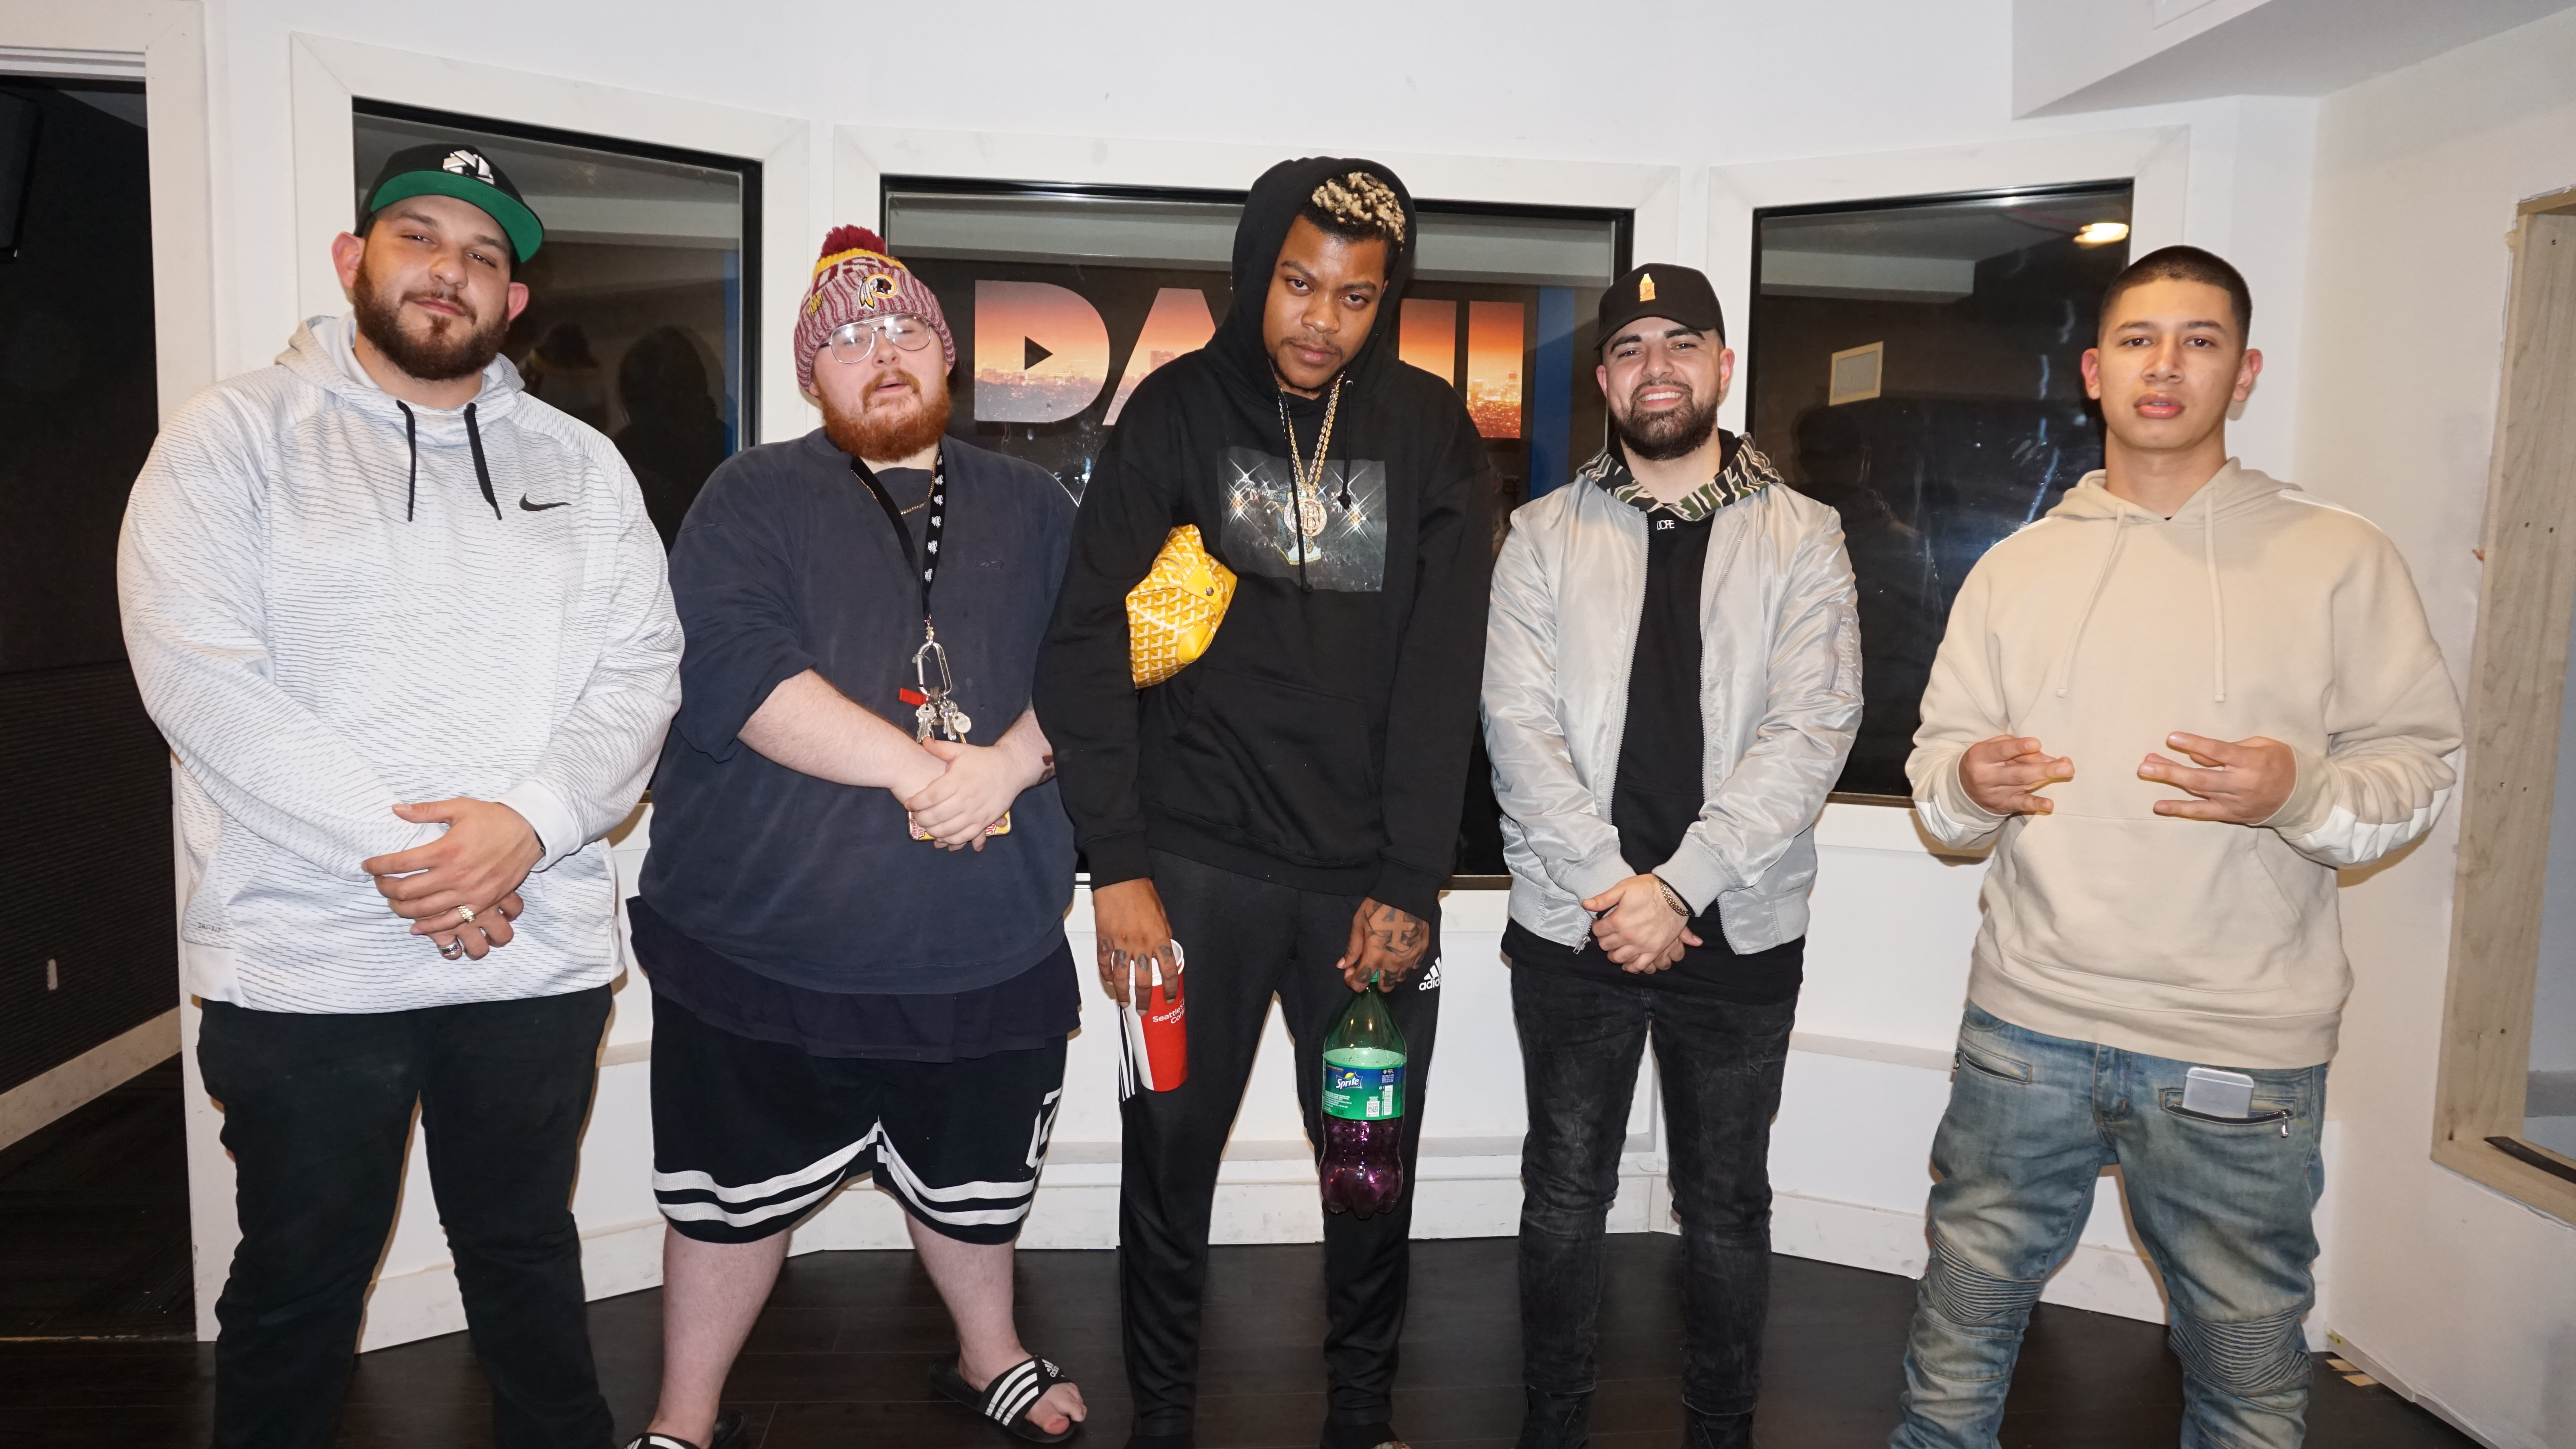 Rosecrans Radio 041 With Cypress And Hef Featuring Bino Rideaux